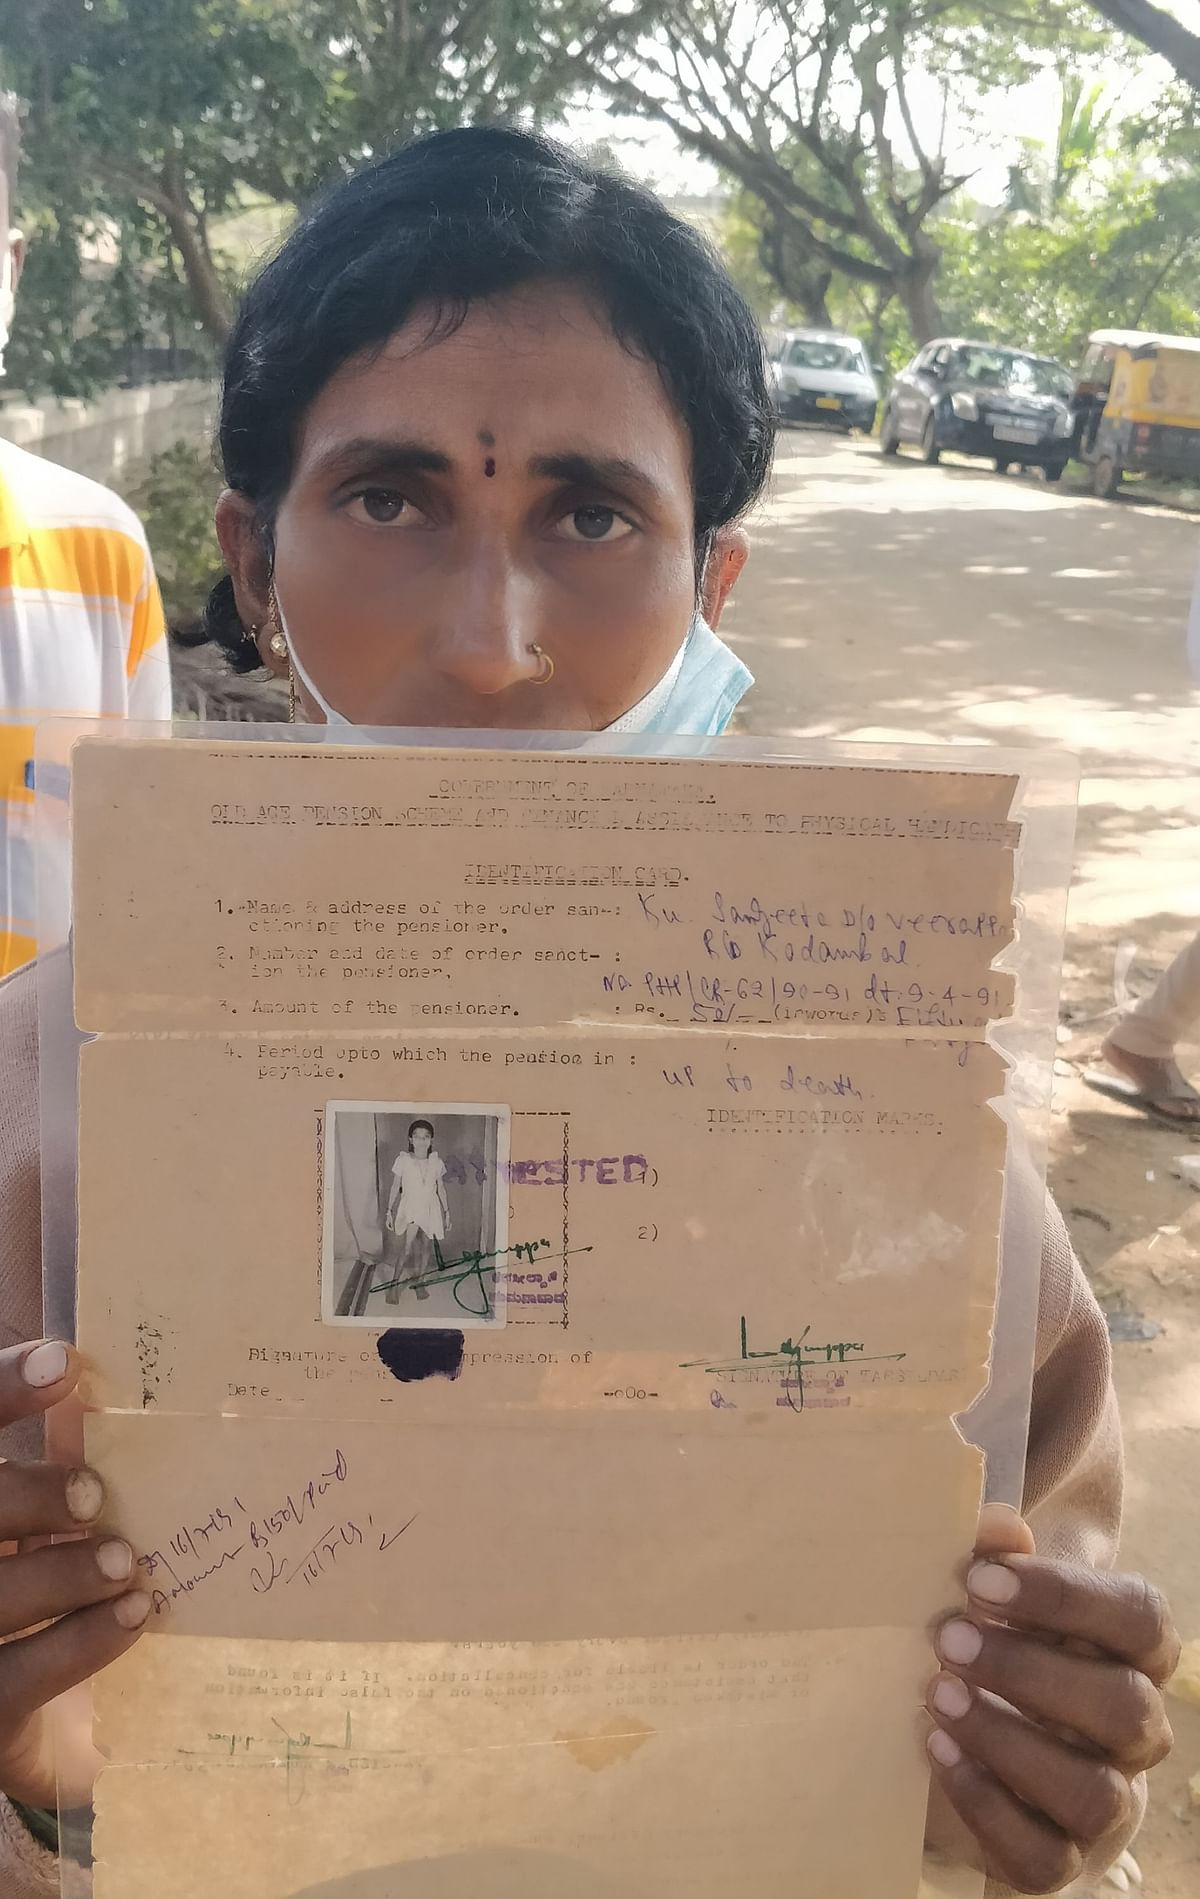 Manjula holds up her sister's disability card. (Source: Ashwini YS for BloombergQuint)